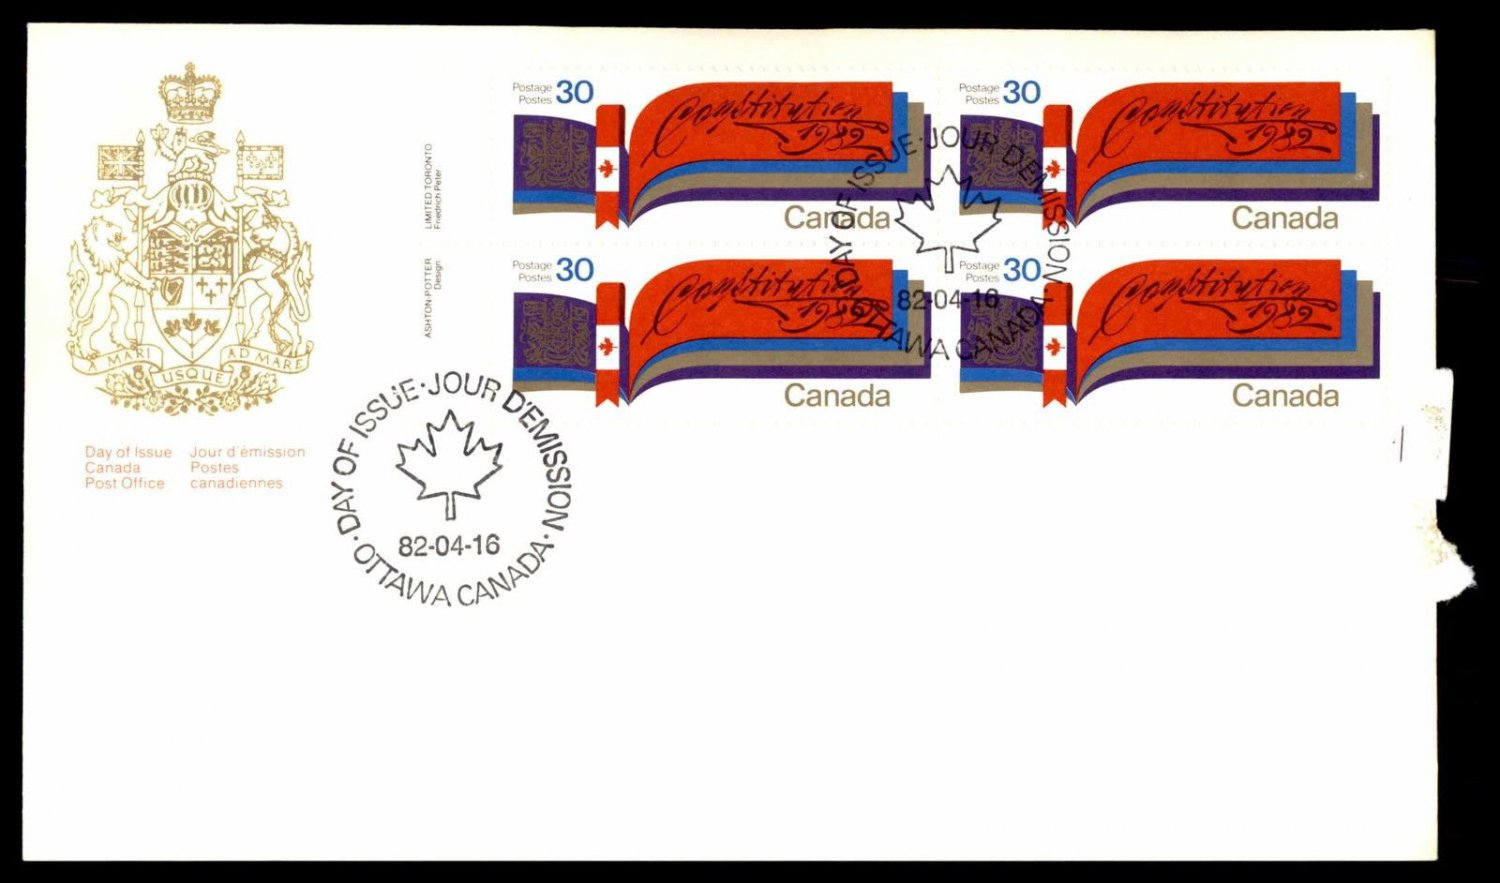 CANADA FDC 1982 CONSTITUTION BL PLATE BLOCK